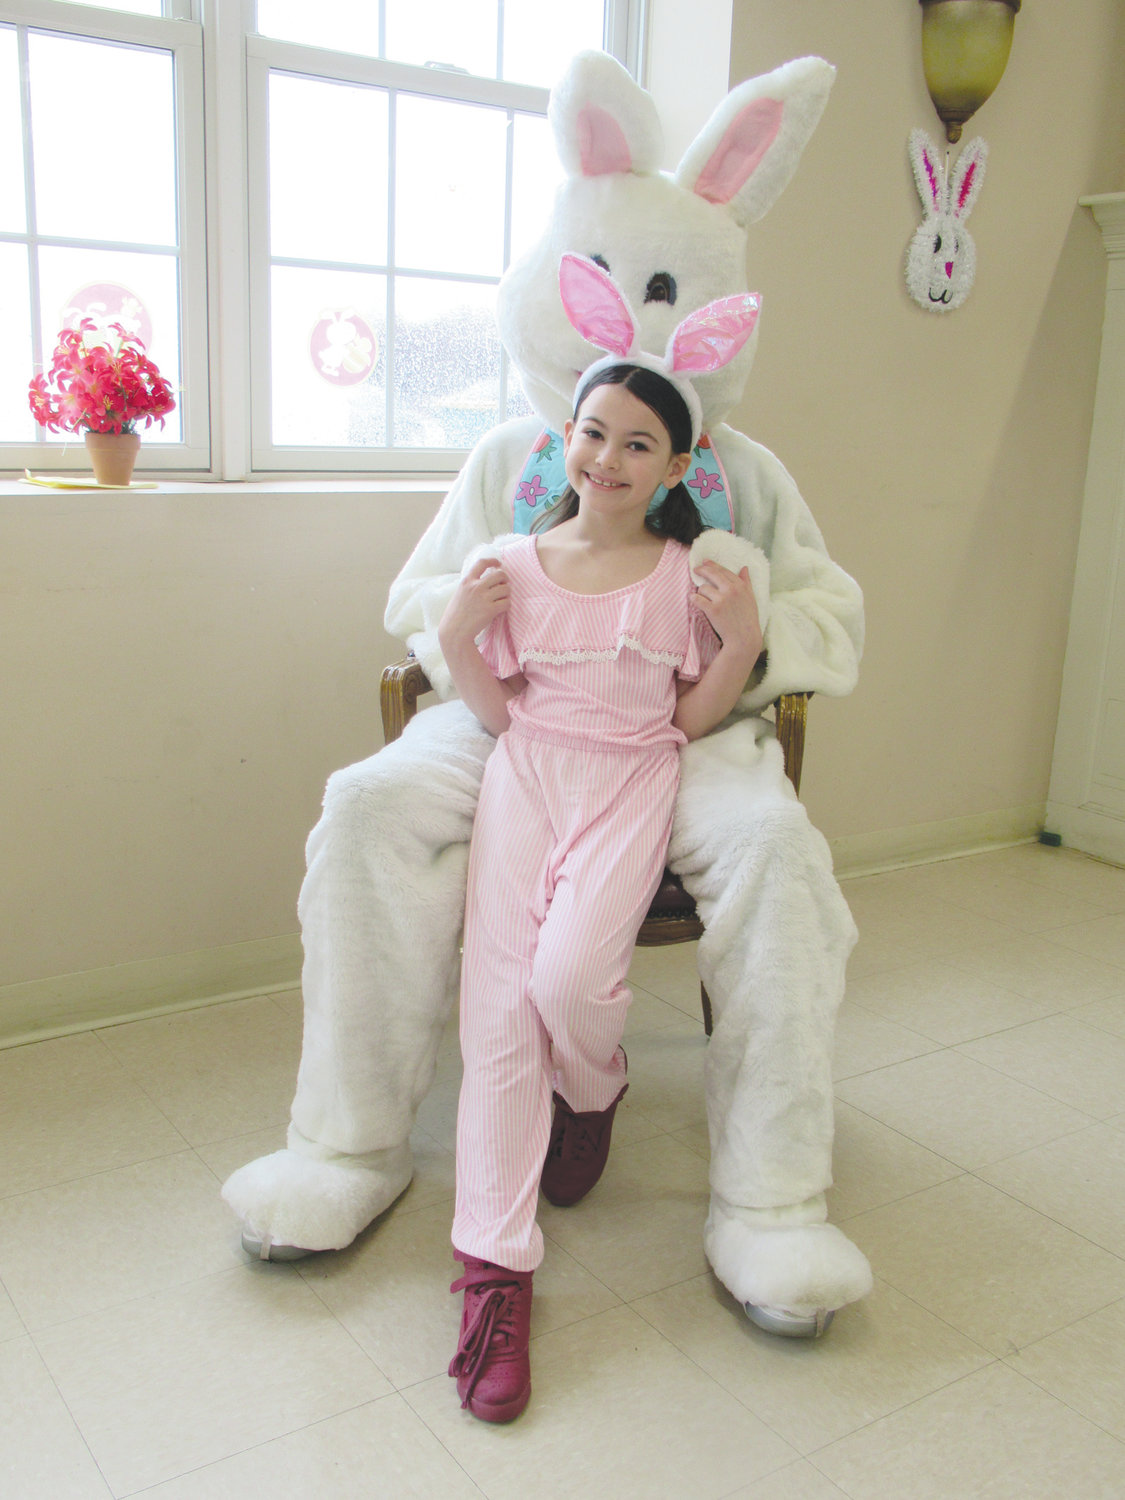 PRETTY IN PINK: Eveling DeSimone, 7, wore a lovely pink outfit and pink-accented ears to have her picture taken with the Easter Bunny Saturday morning.